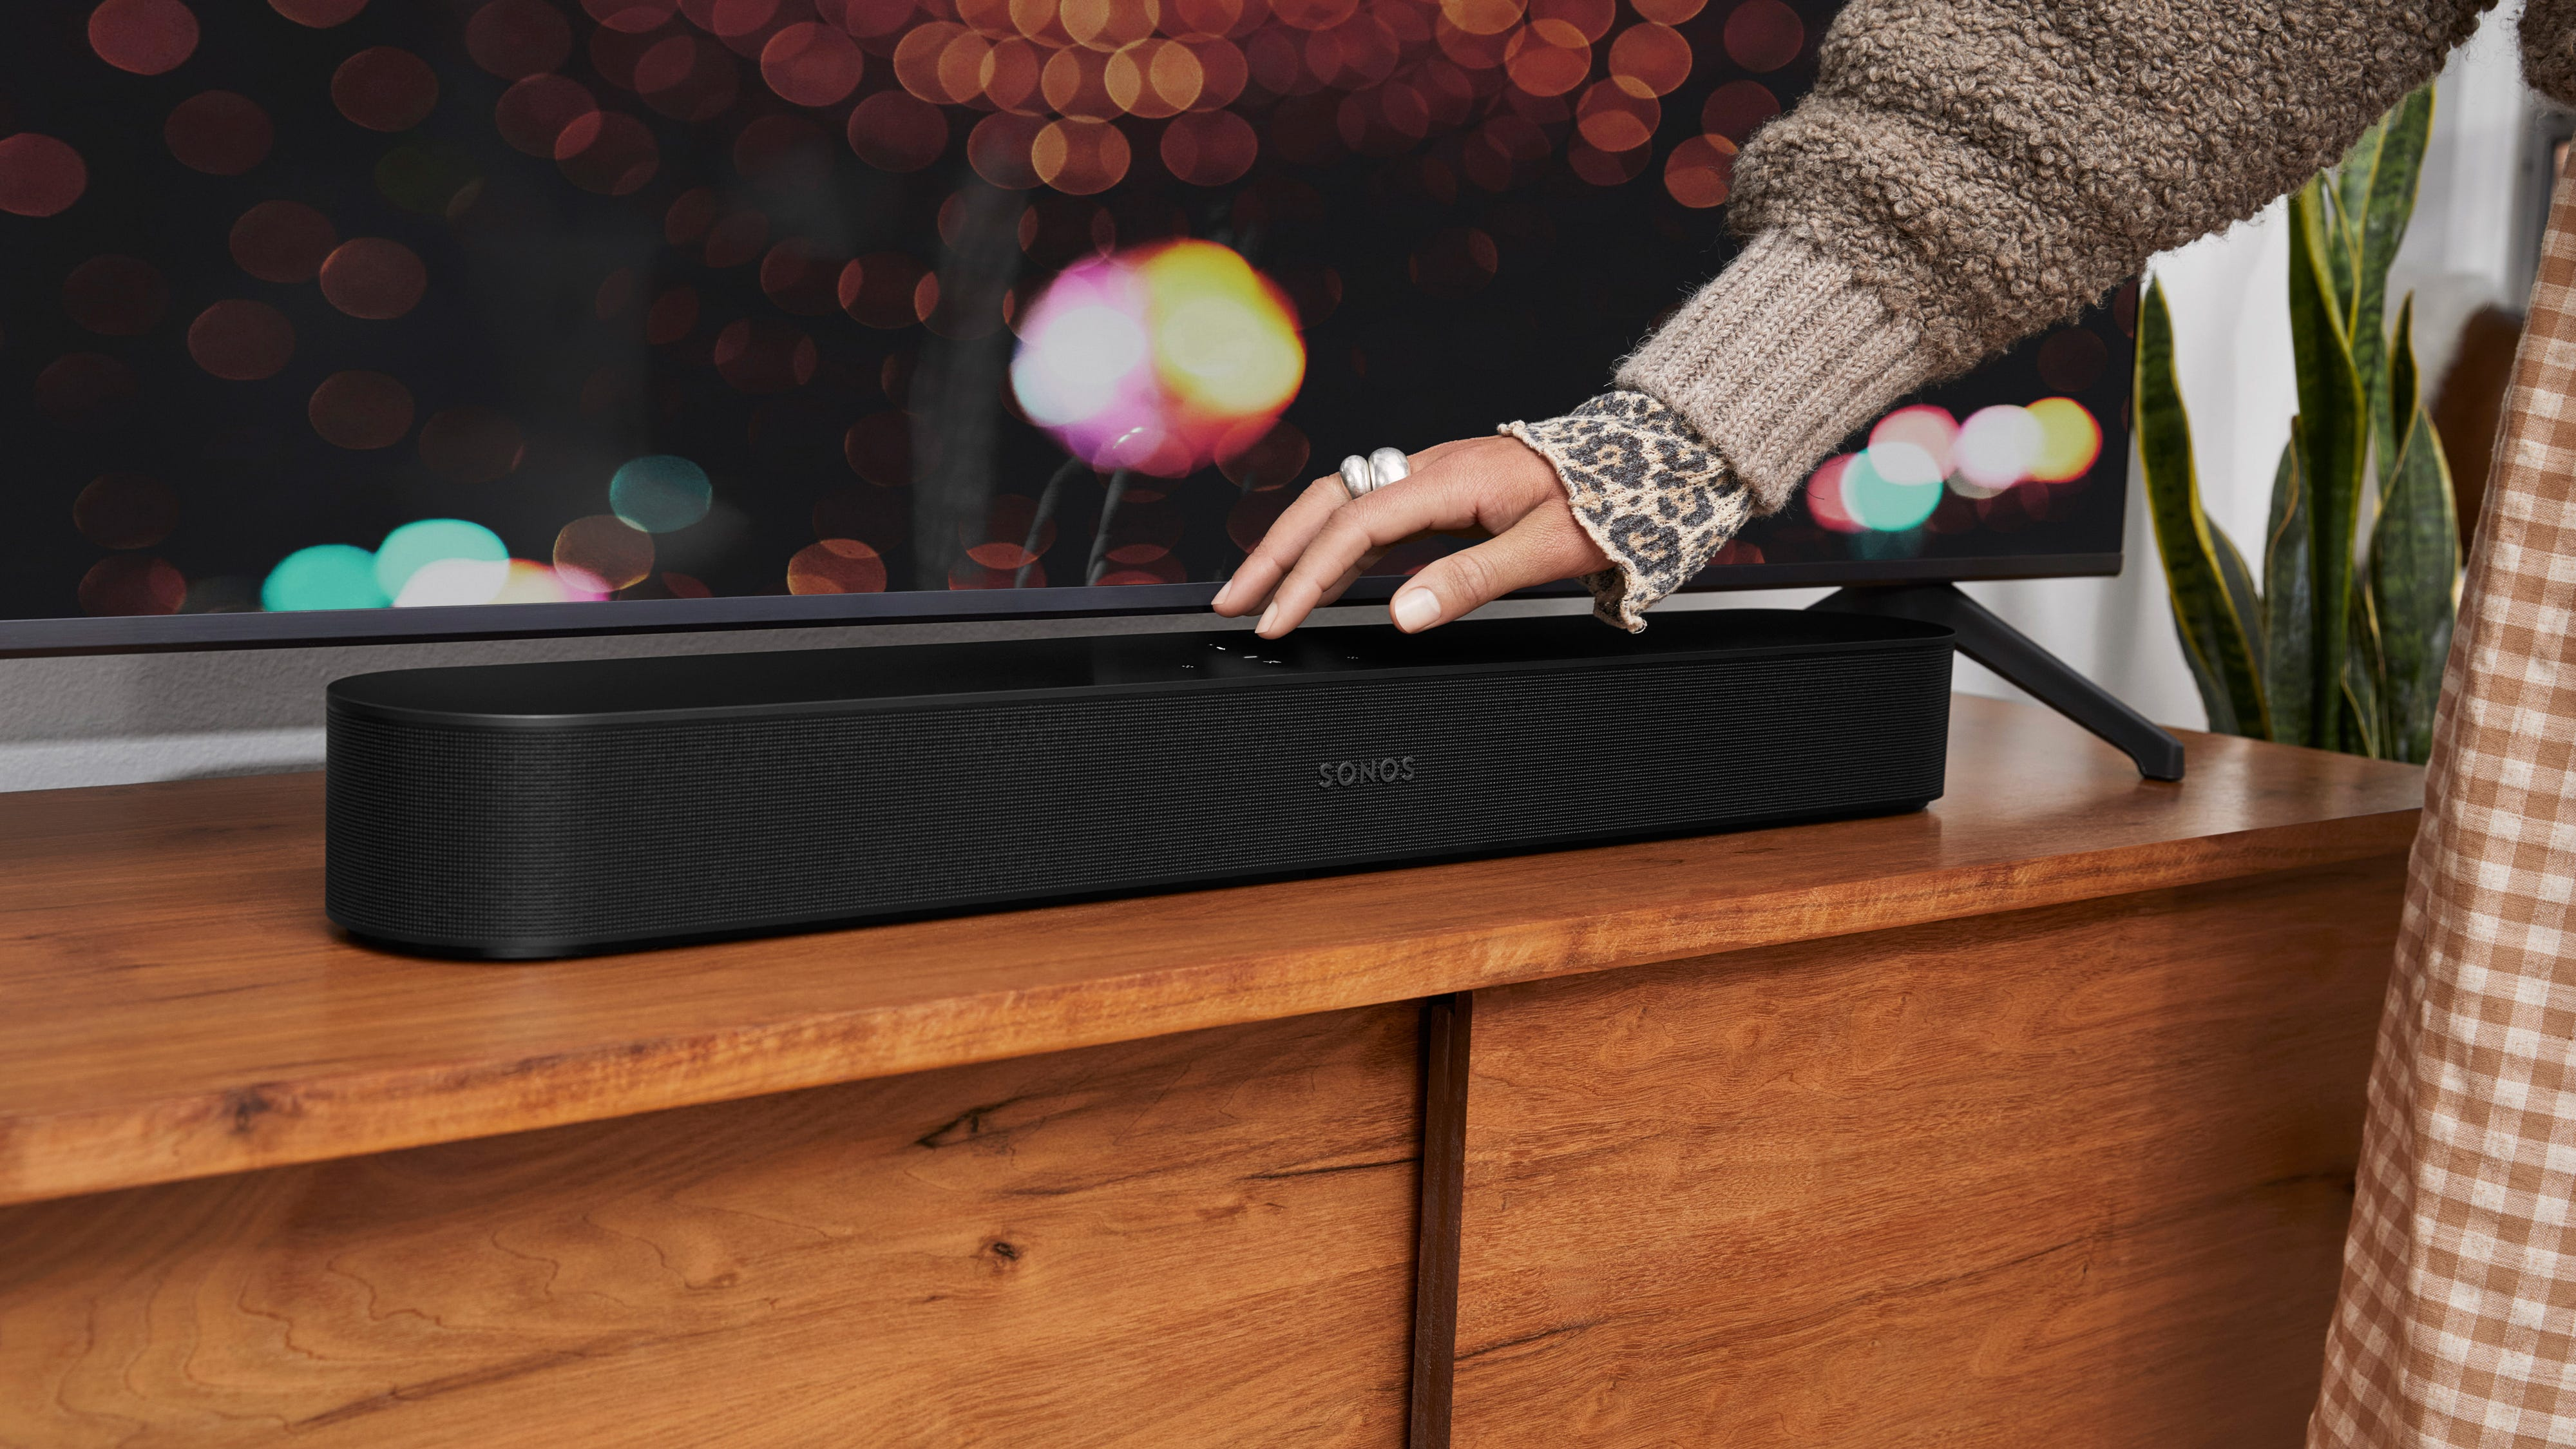 How to pre-order the new Sonos Beam with Dolby Atmos